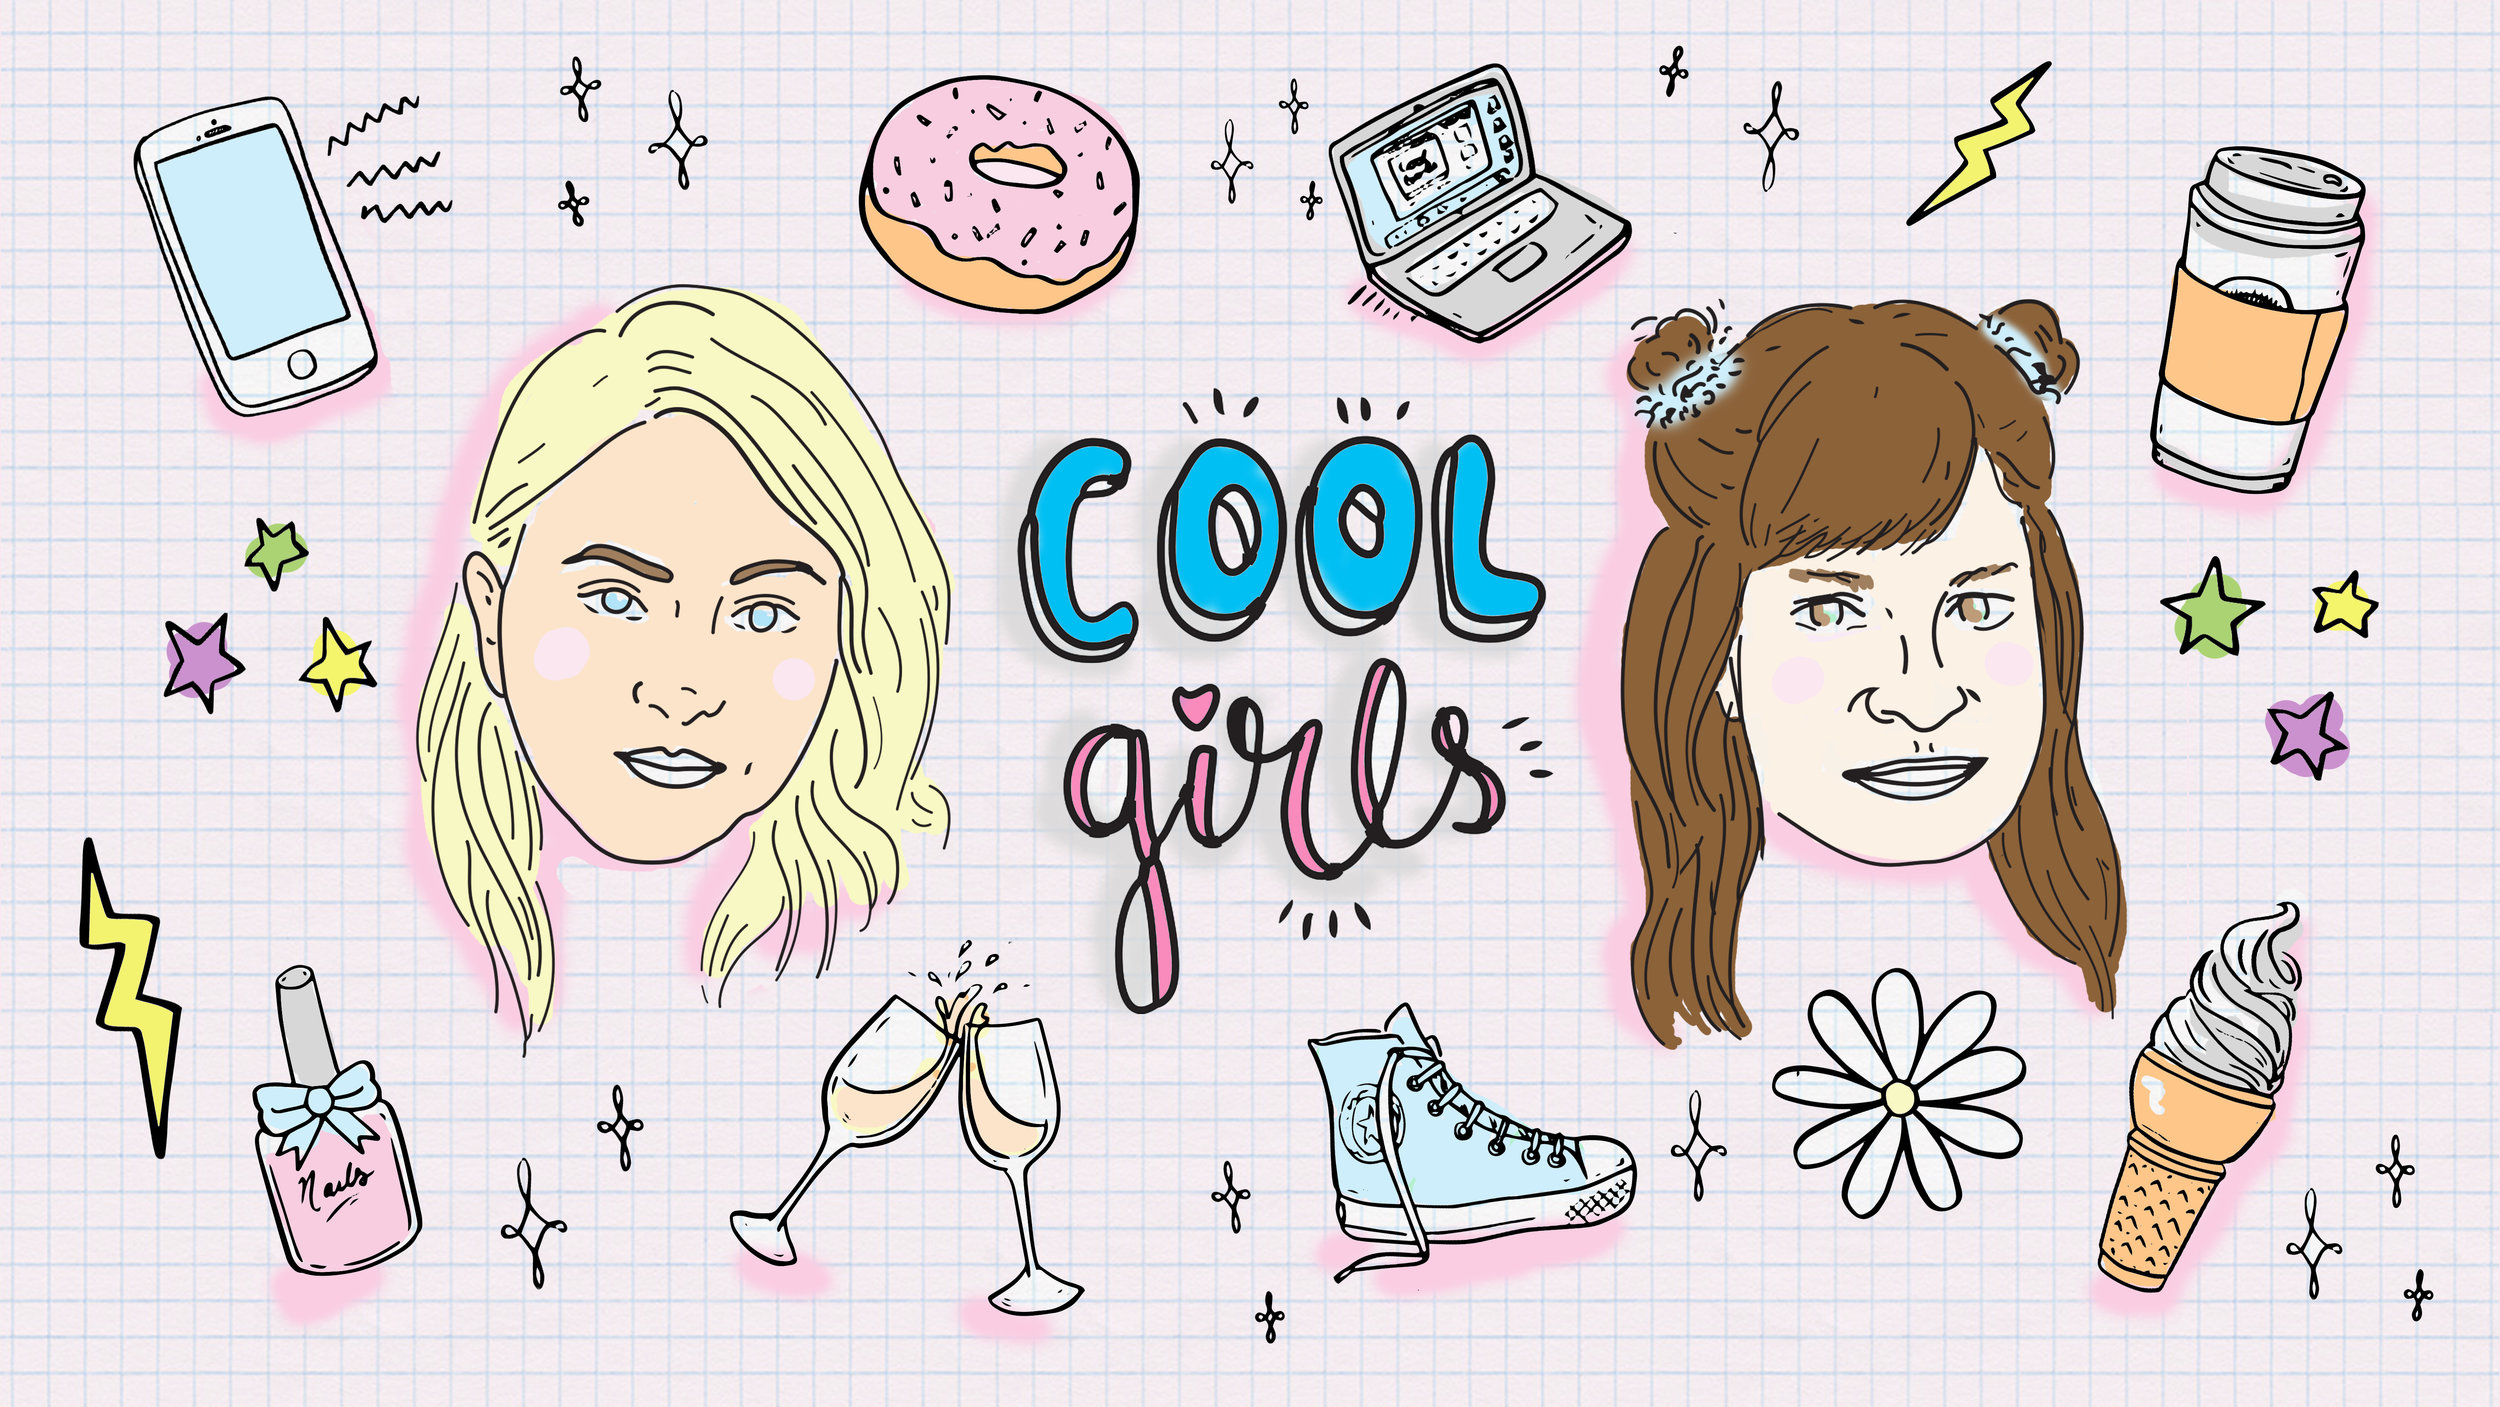 coolgirls youtube coloured copy PINK.jpg